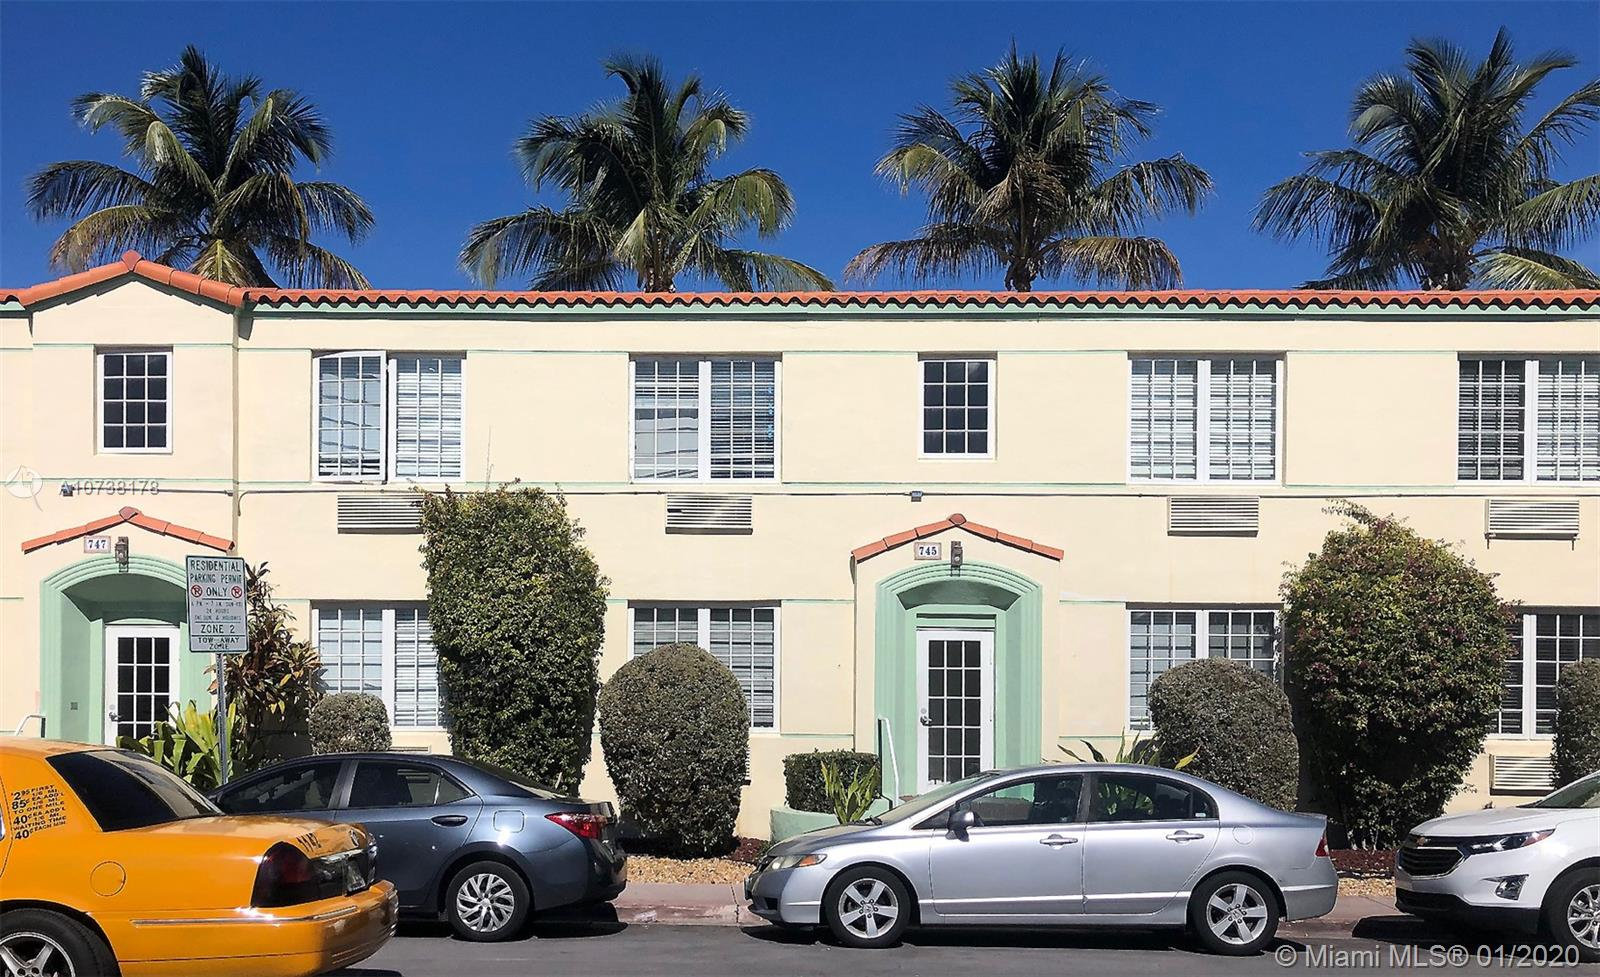 741  15th St #11 For Sale A10738178, FL